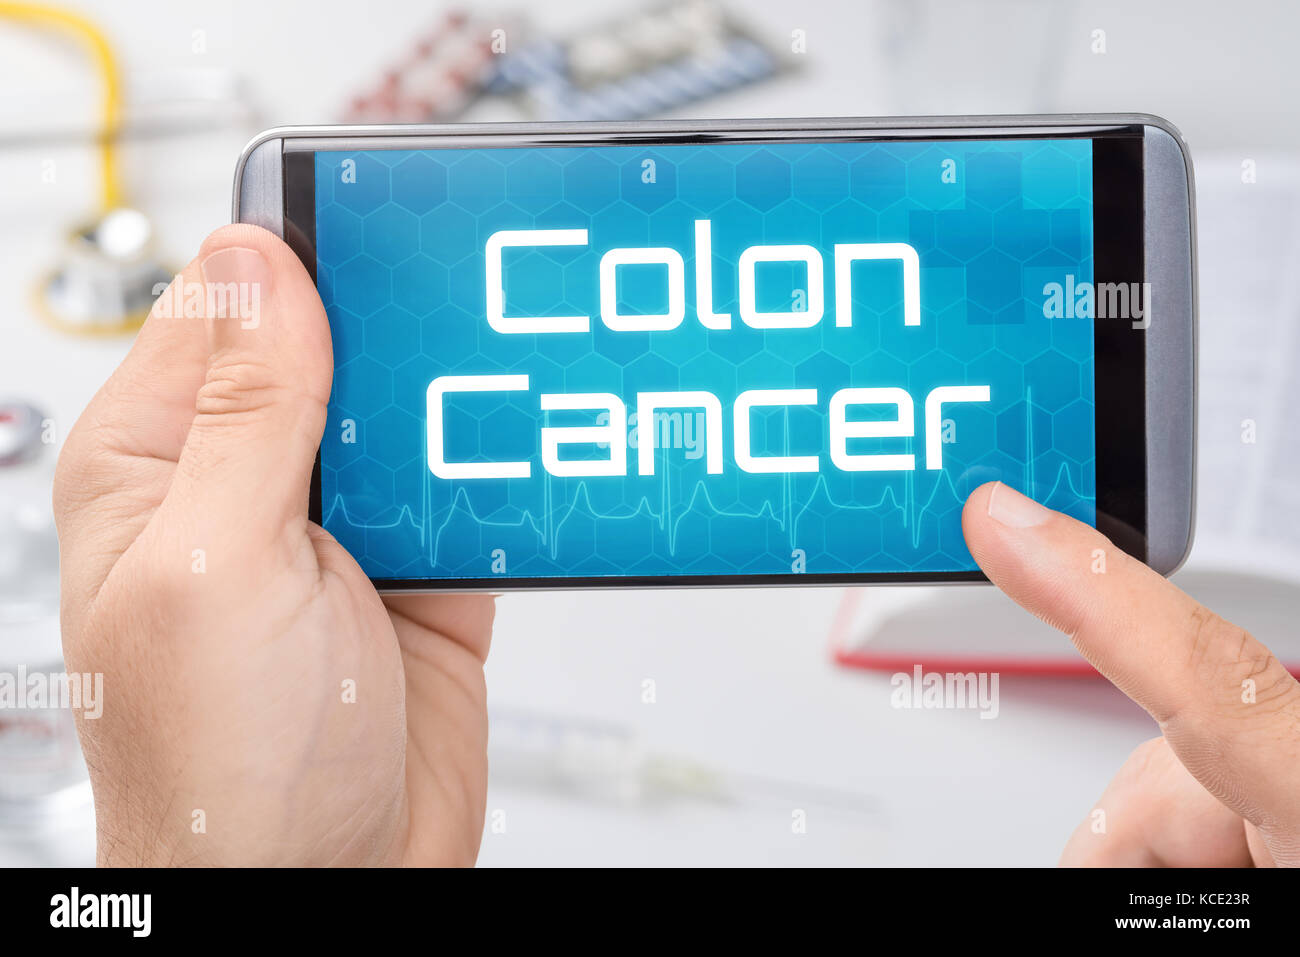 Smartphone with the text Colon Cancer on the display - Stock Image